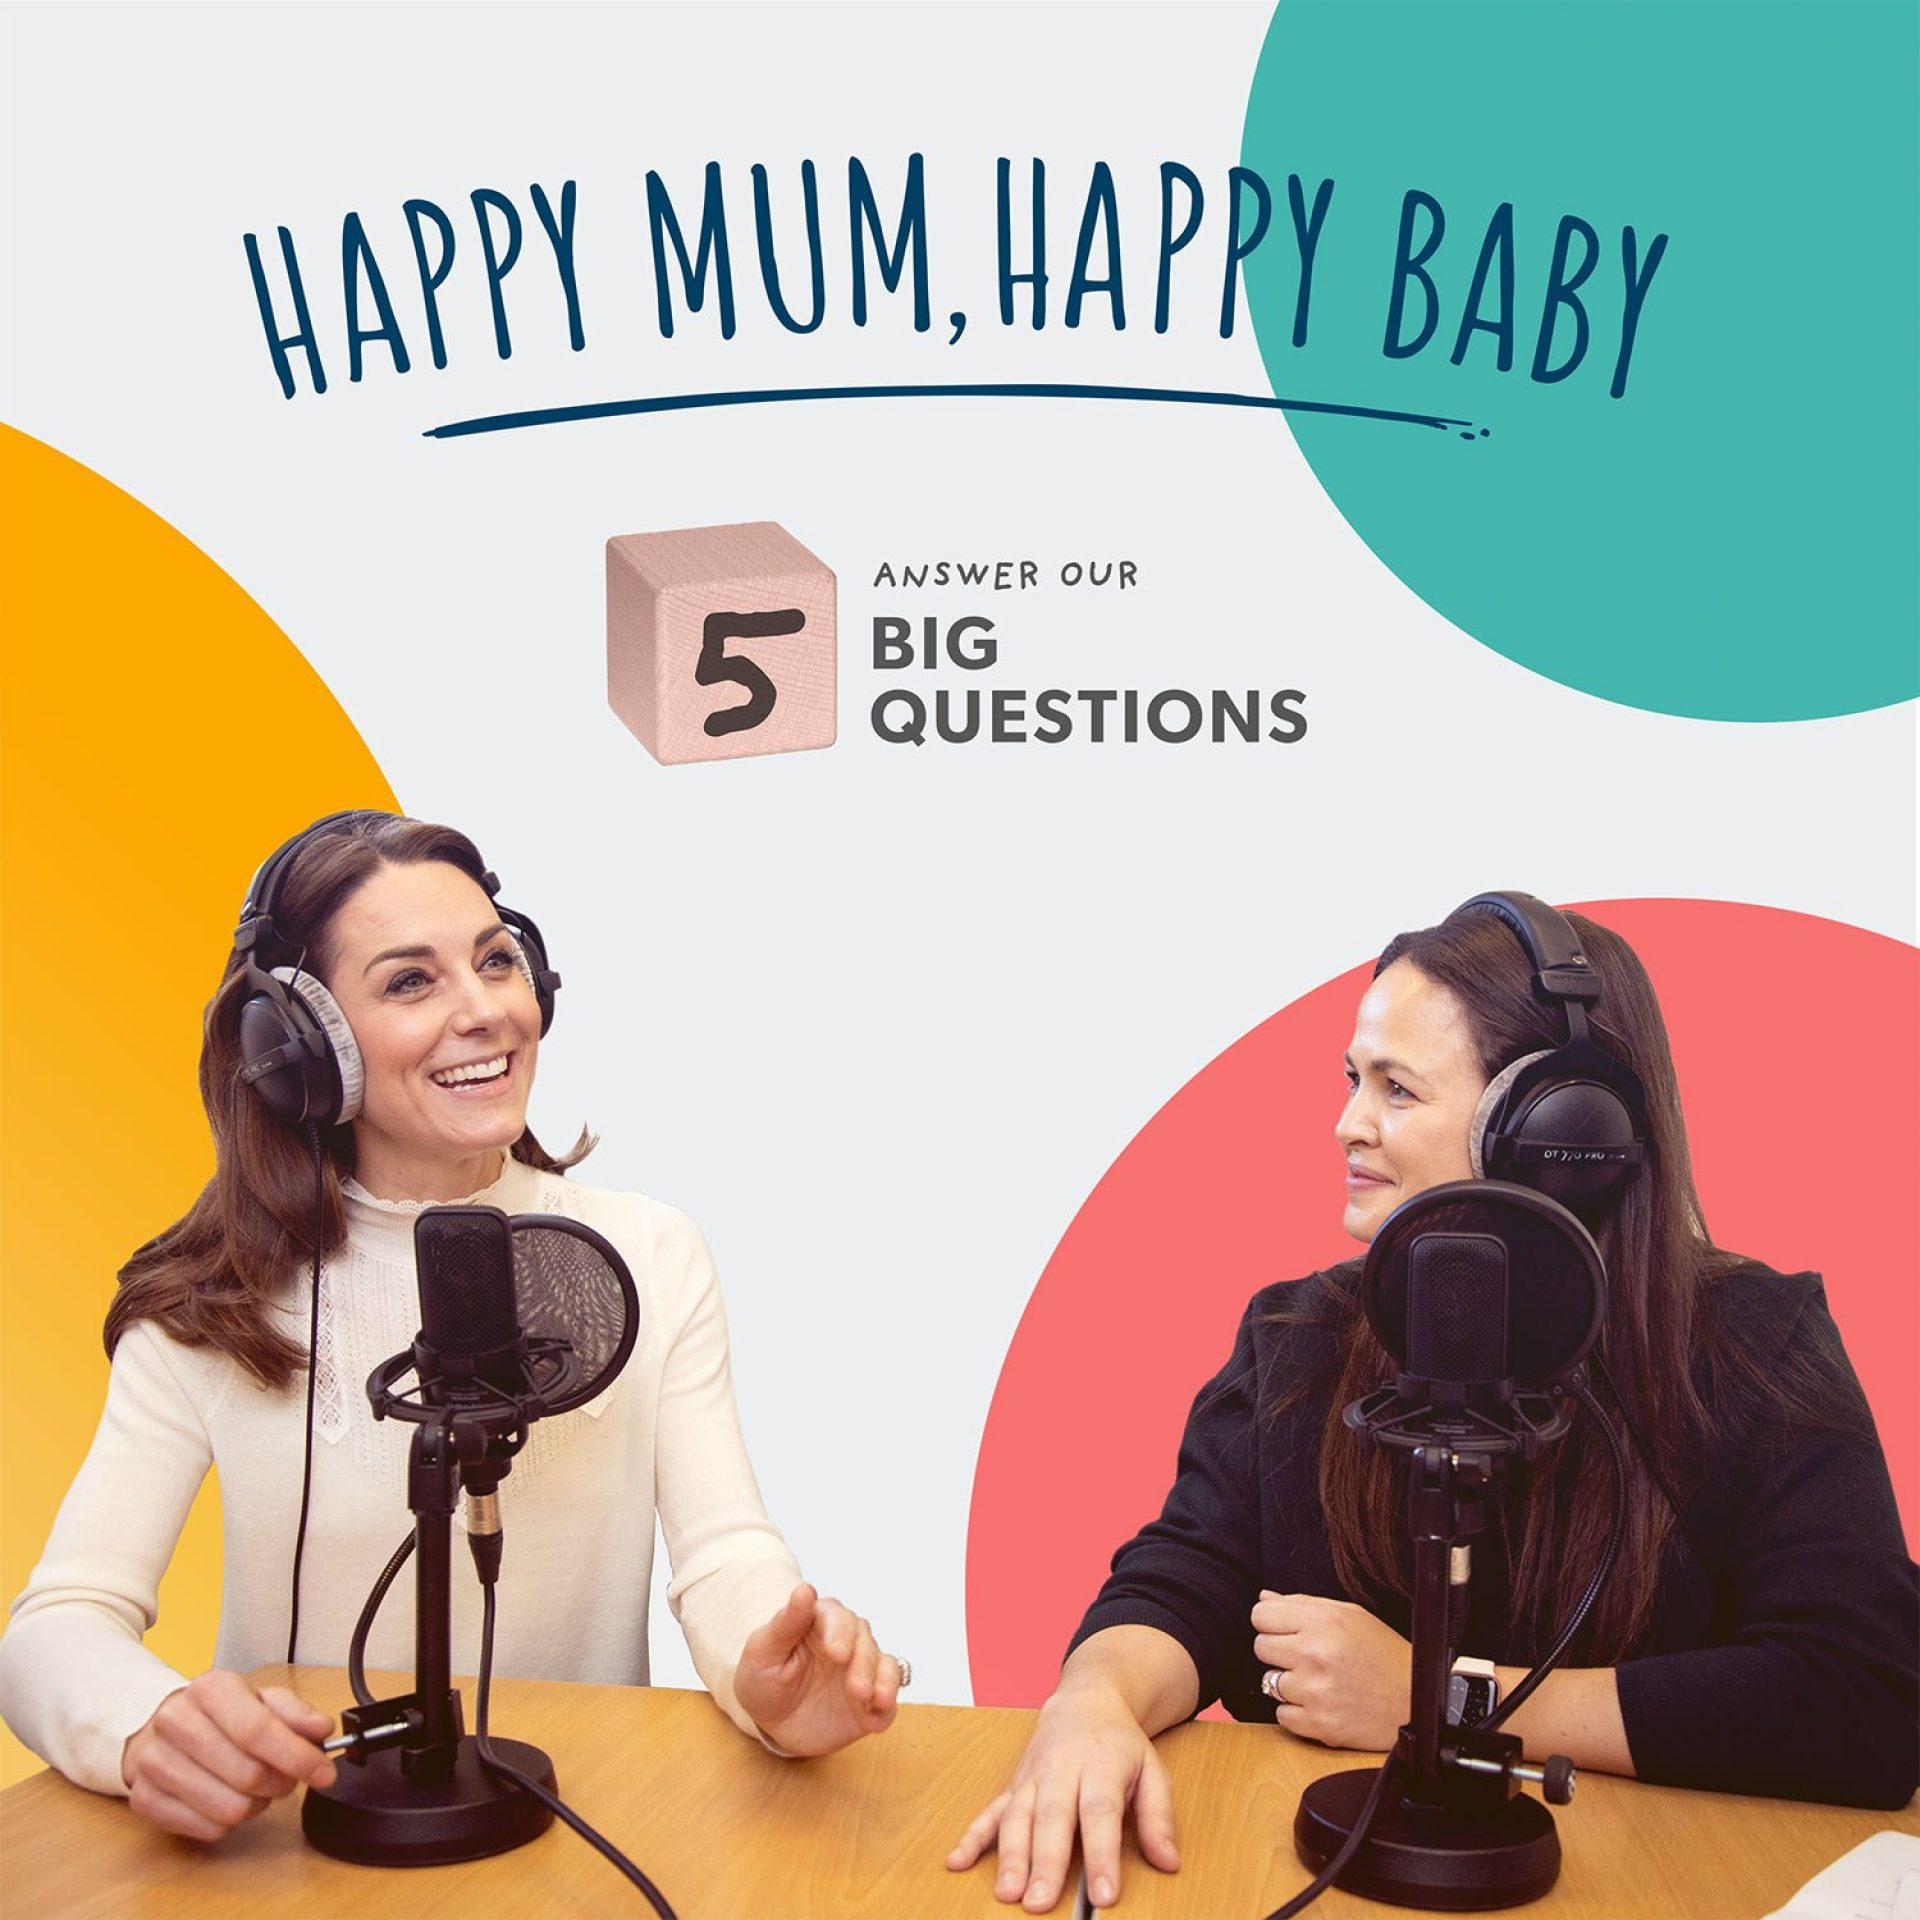 Happy Mum Happy Baby: The Duchess of Cambridge